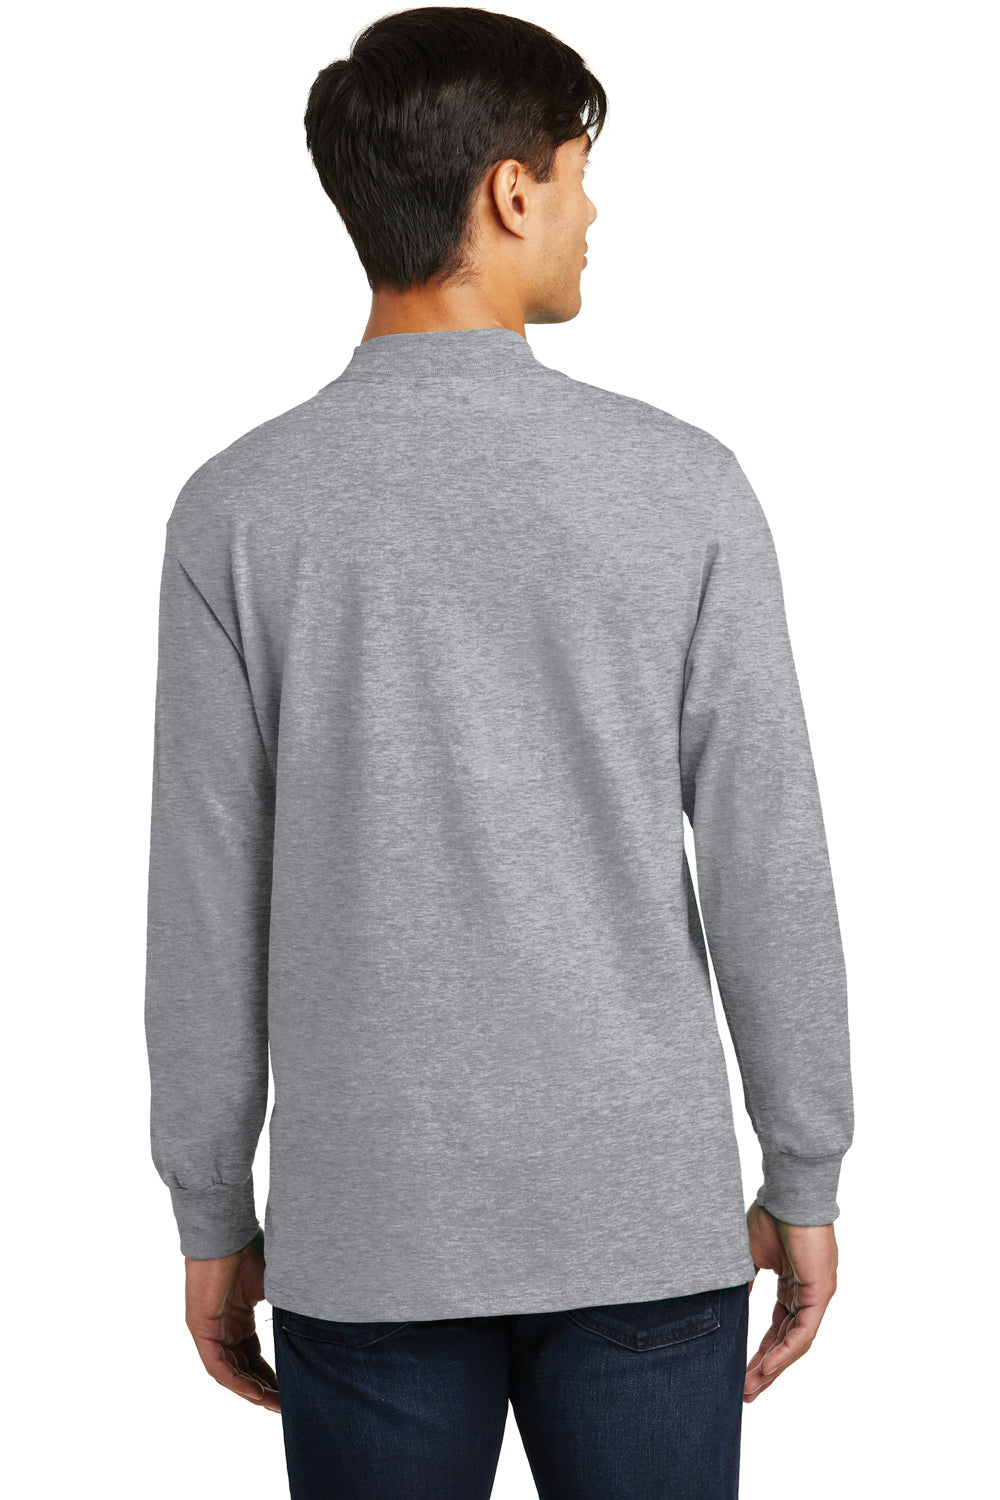 Port & Company PC61M Mens Essential Long Sleeve Mock Neck T-Shirt Heather Grey Back